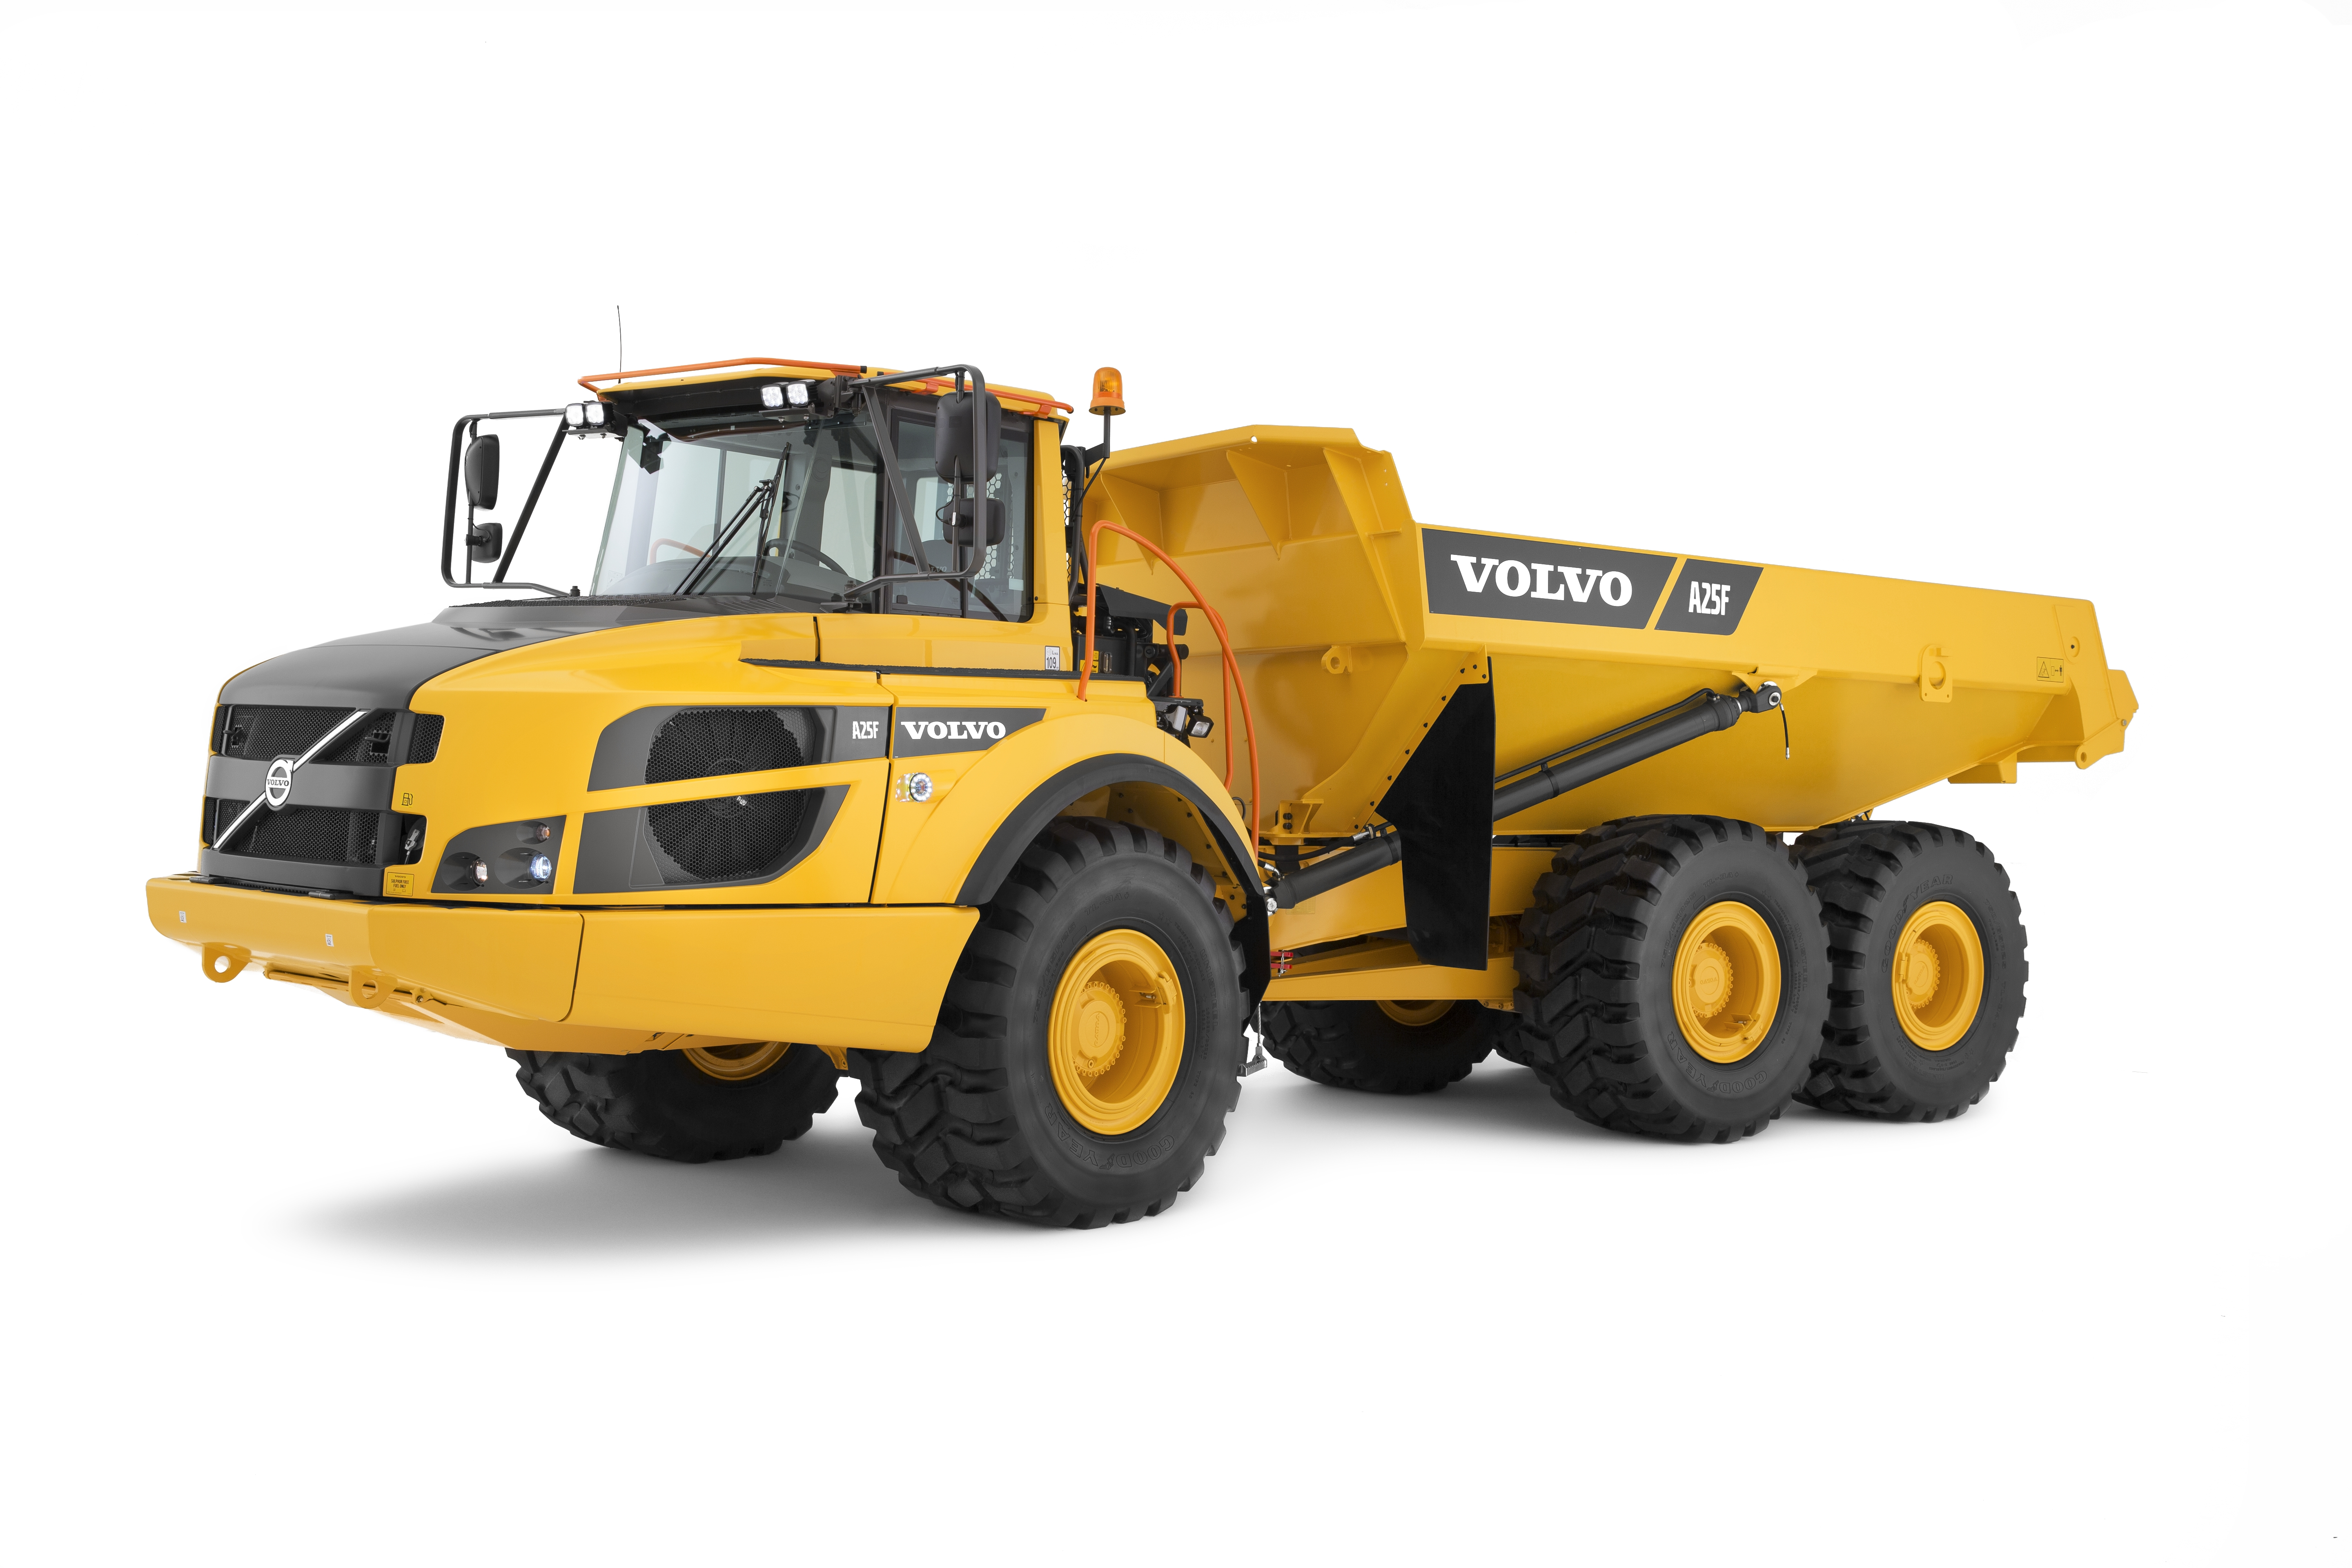 Volvo A25F Specifications & Technical Data (2011-2014) | LECTURA Specs